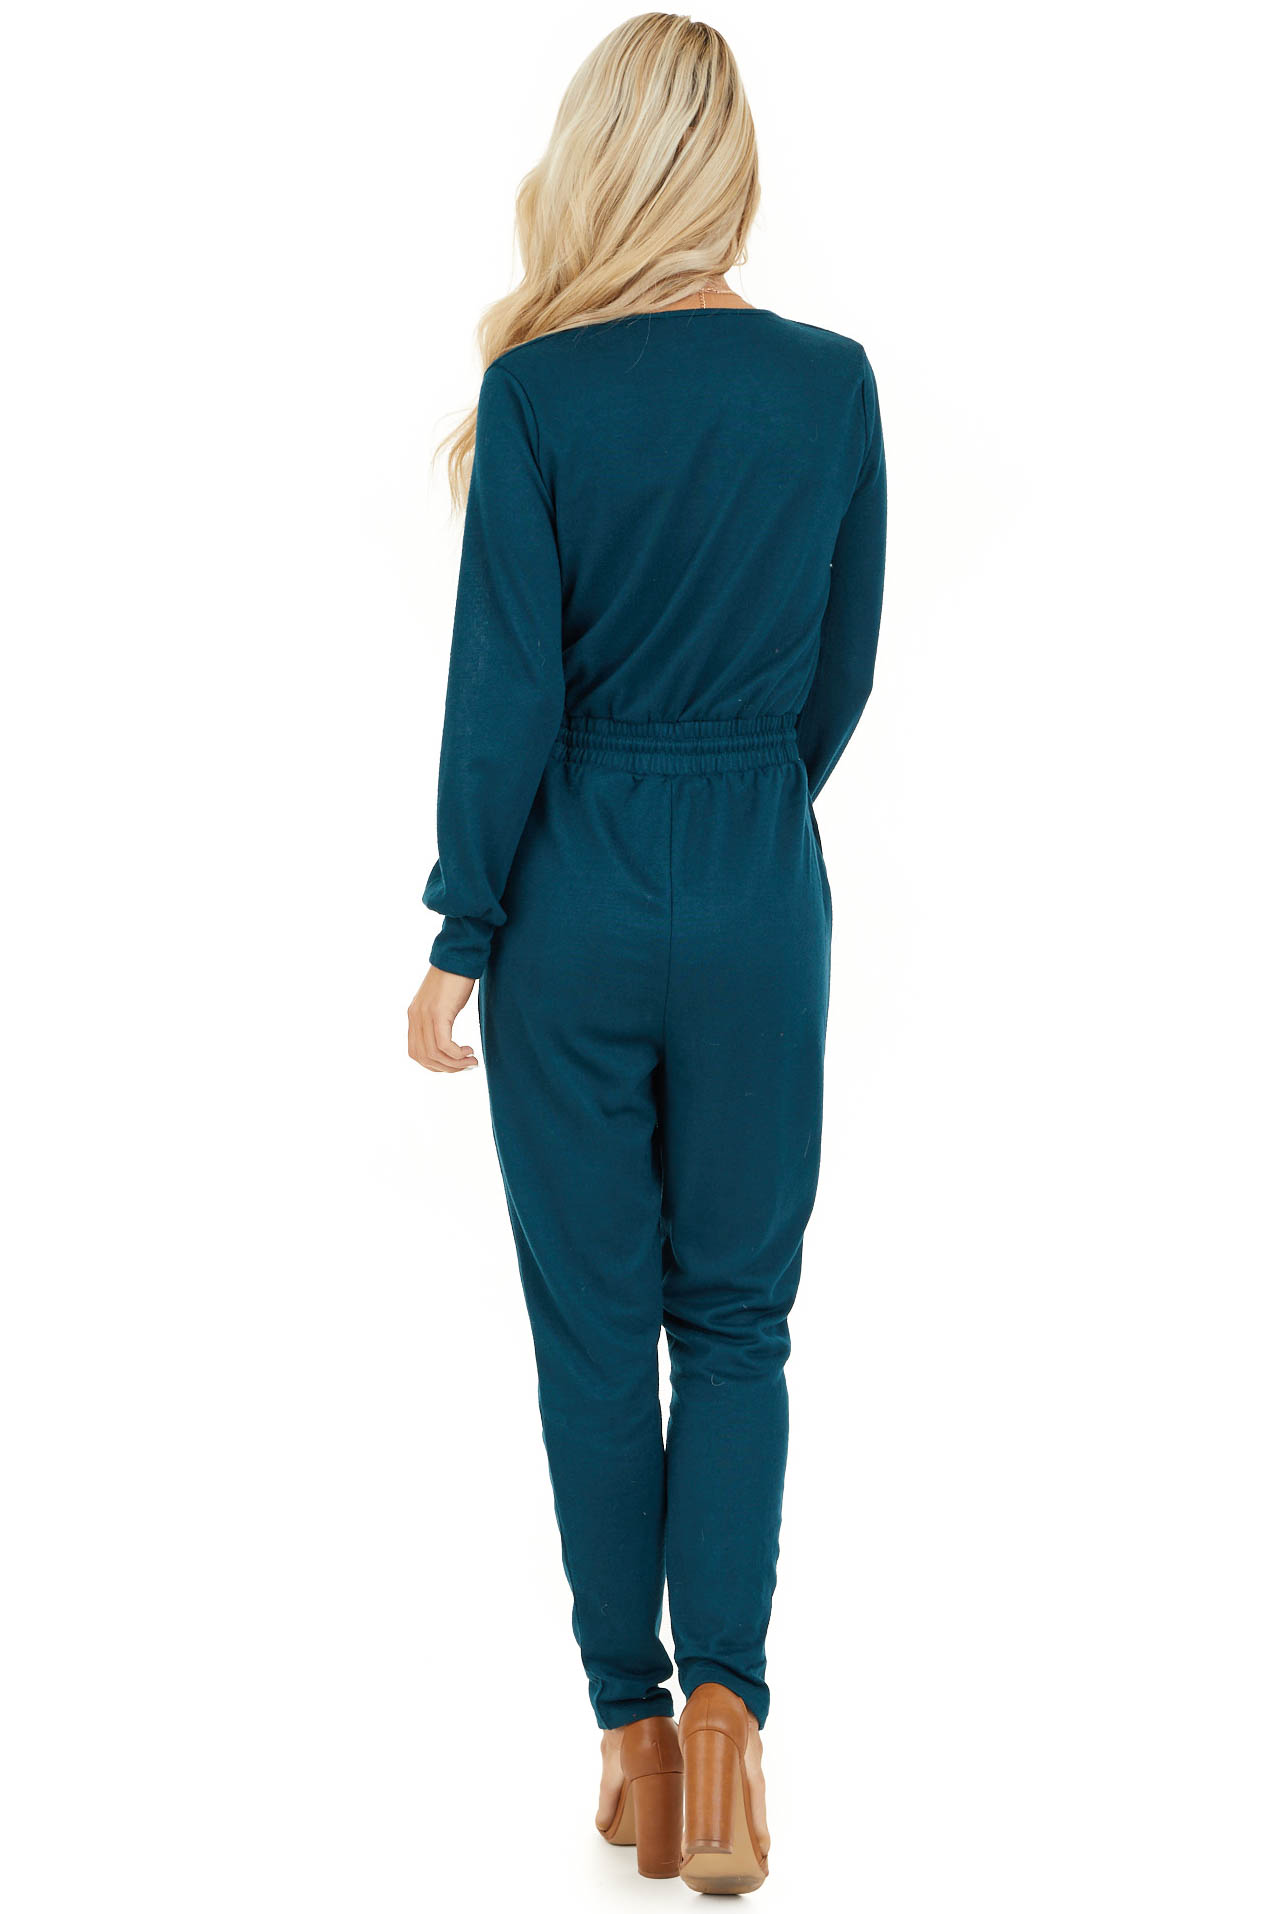 Teal V Neck Jumpsuit with Drawstring Waist and Long Sleeves back full body